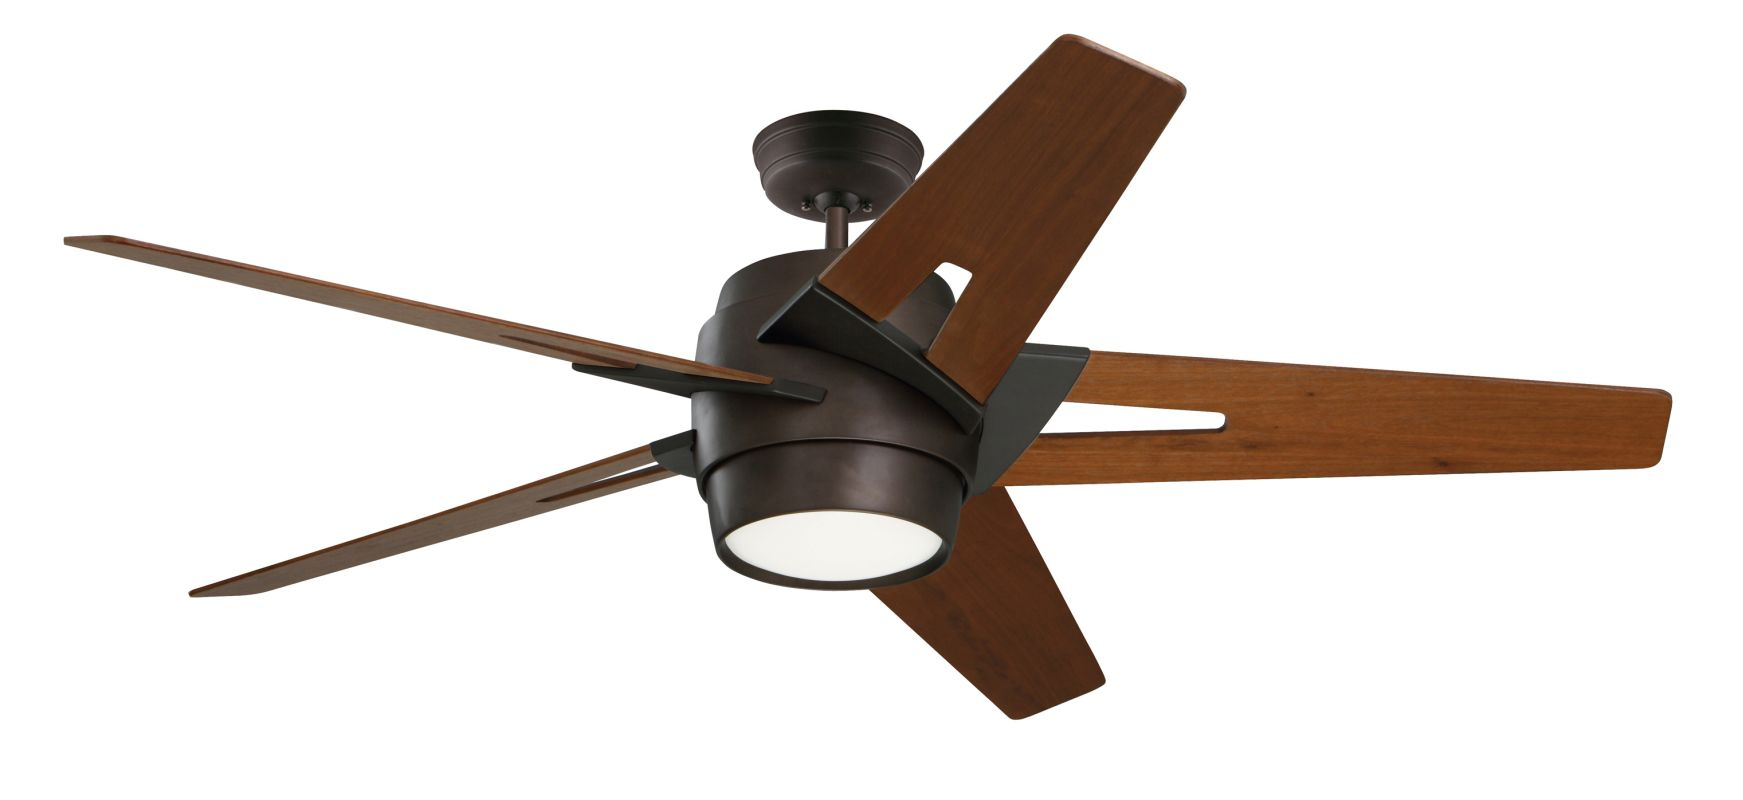 "Emerson CF550 Luxe Eco 54"" 5 Blade Ceiling Fan - Blades and Light Kit"